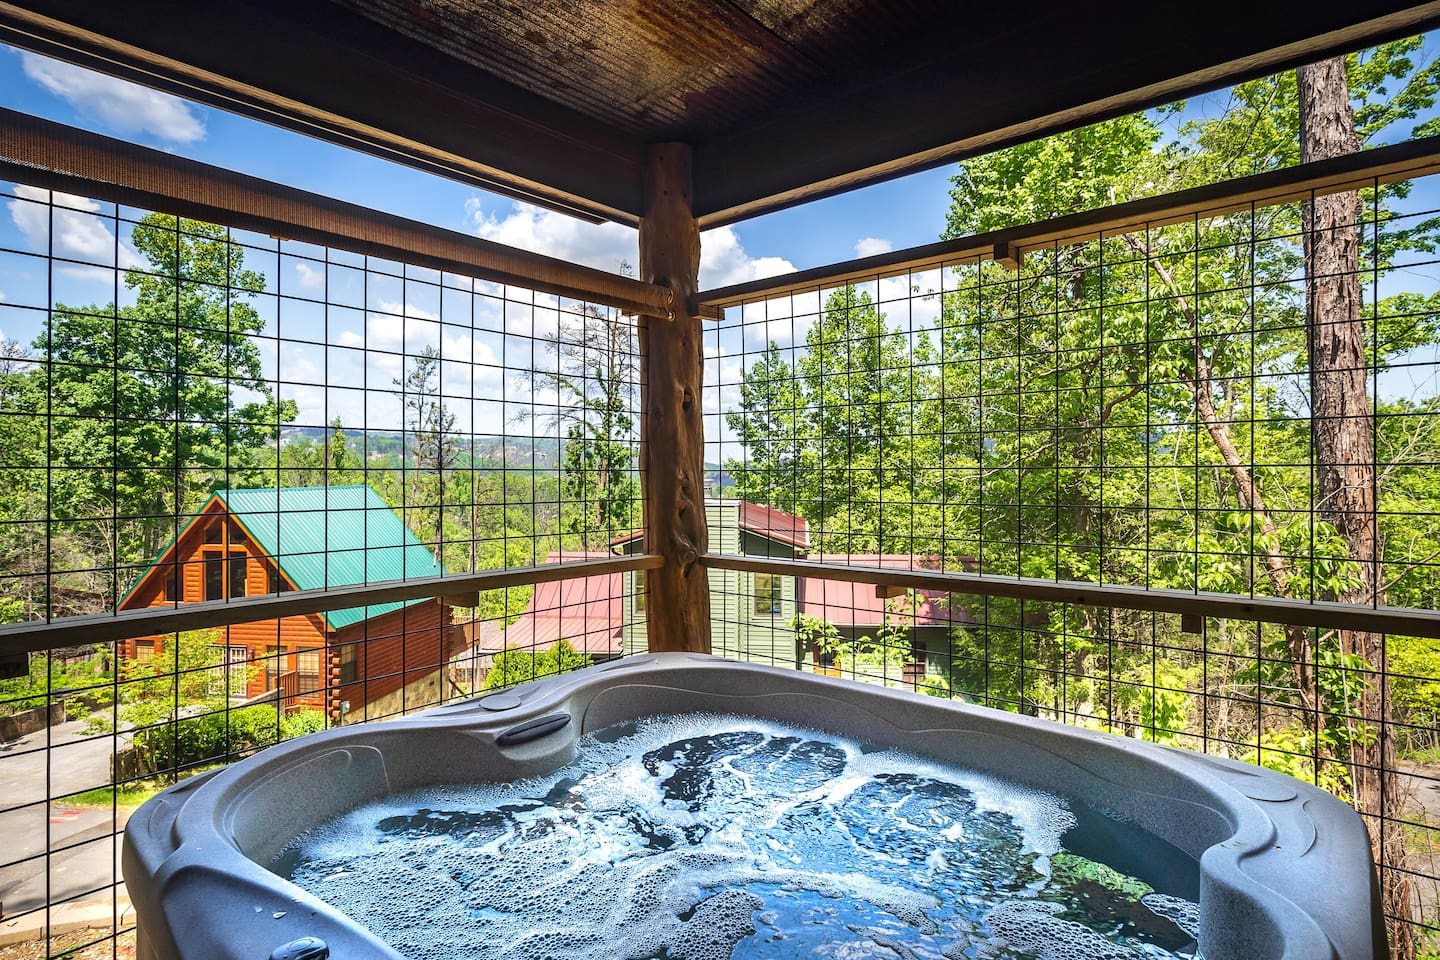 Hot tub (has roll down shade for privacy)